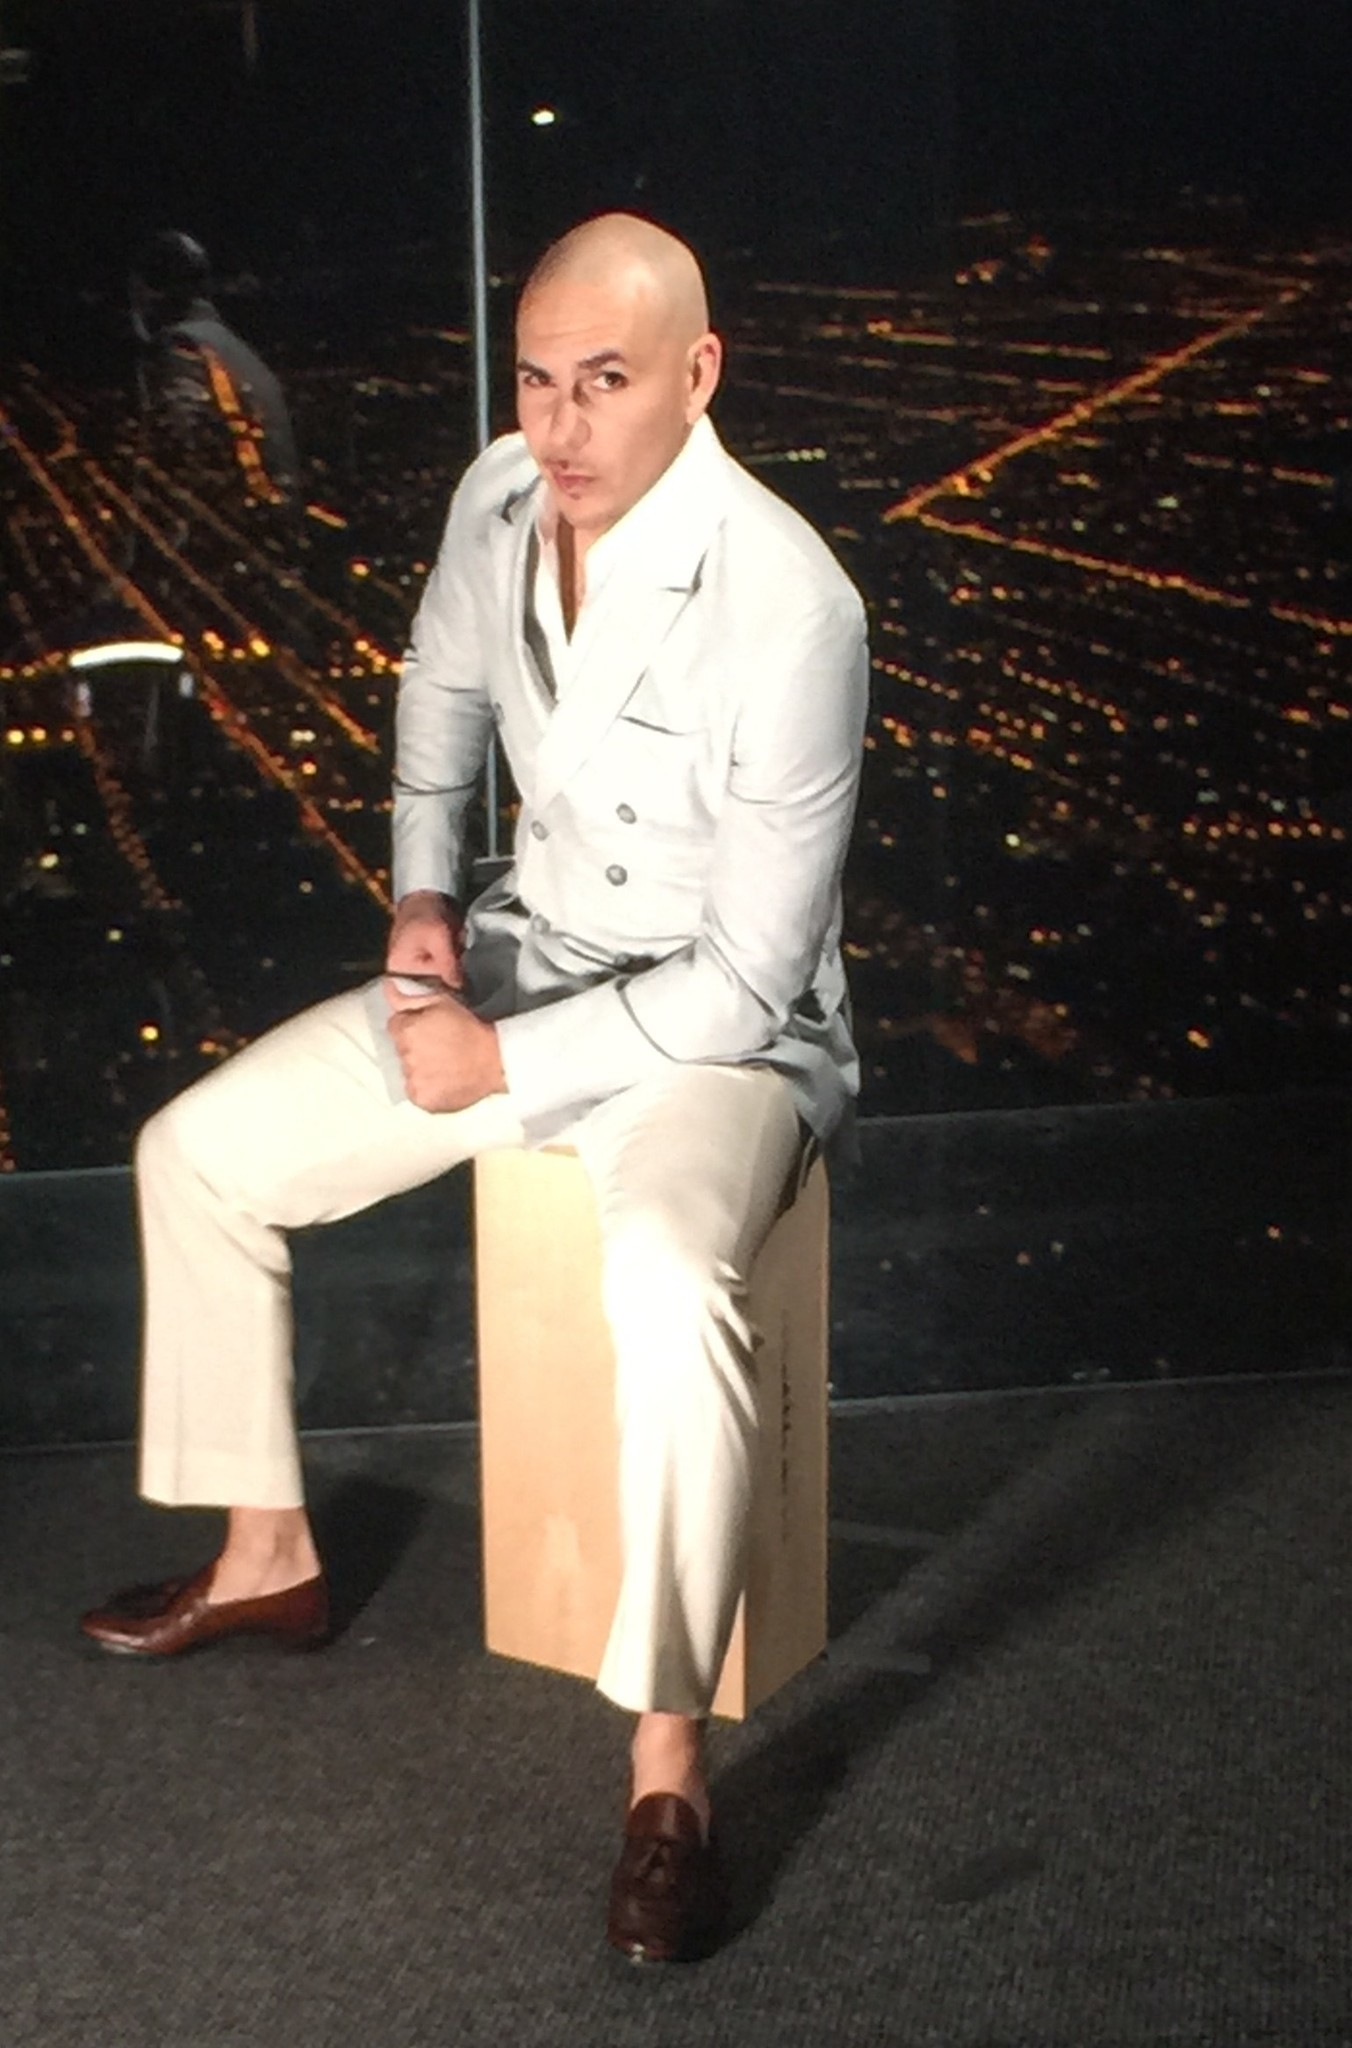 Sighting Pitbull Visits Willis Tower S Skydeck Chicago